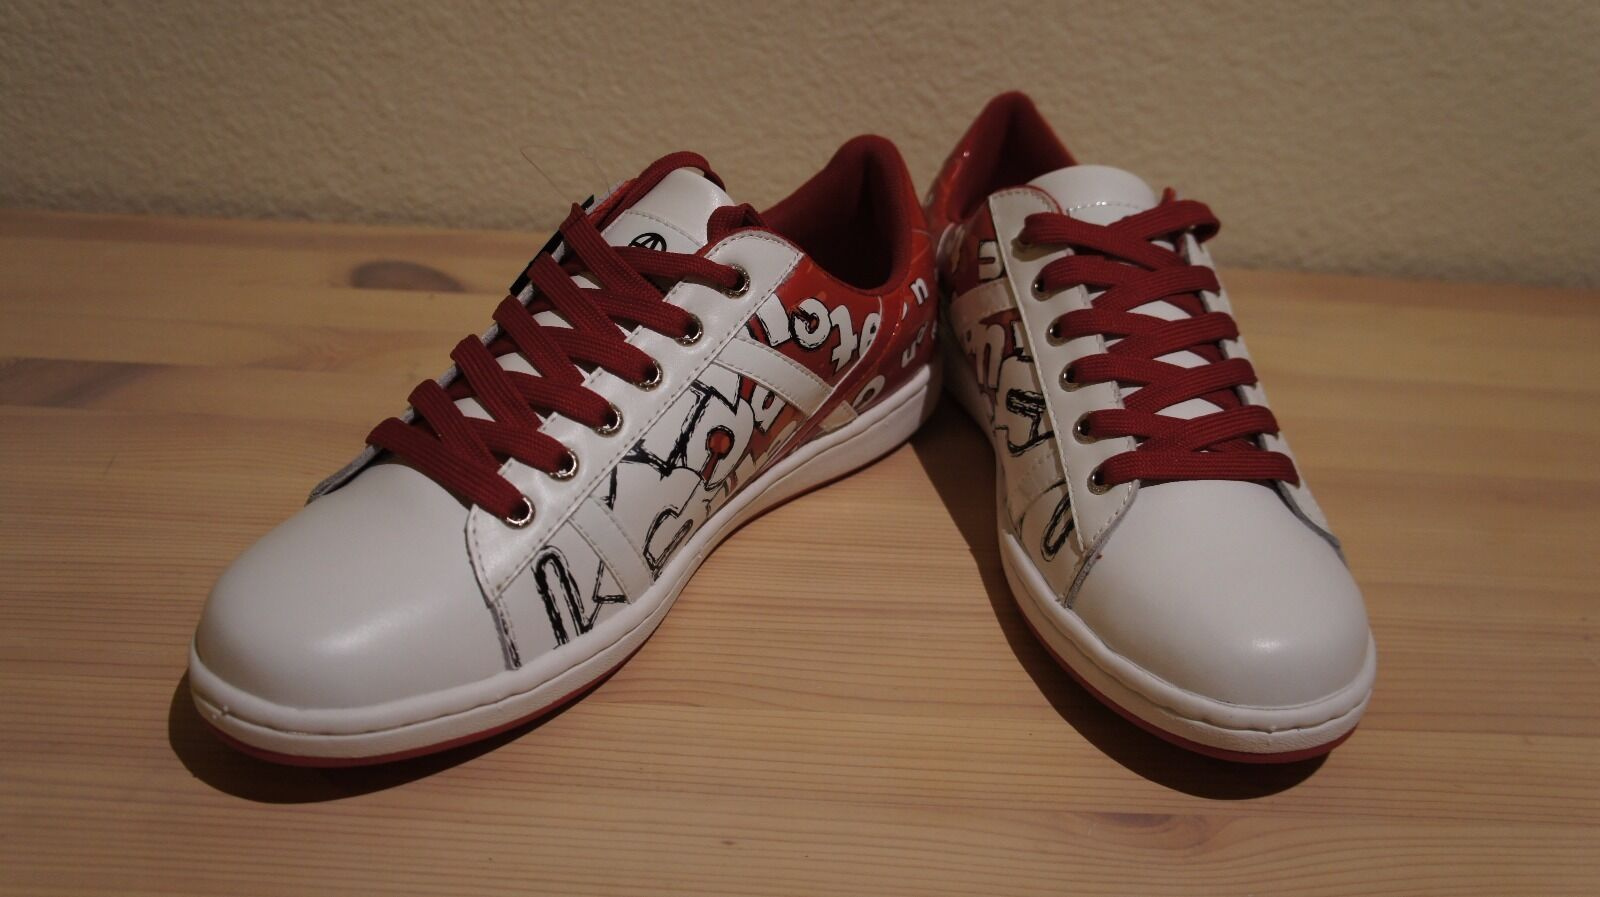 Acupuncture London shoes White&Red 'Letters'